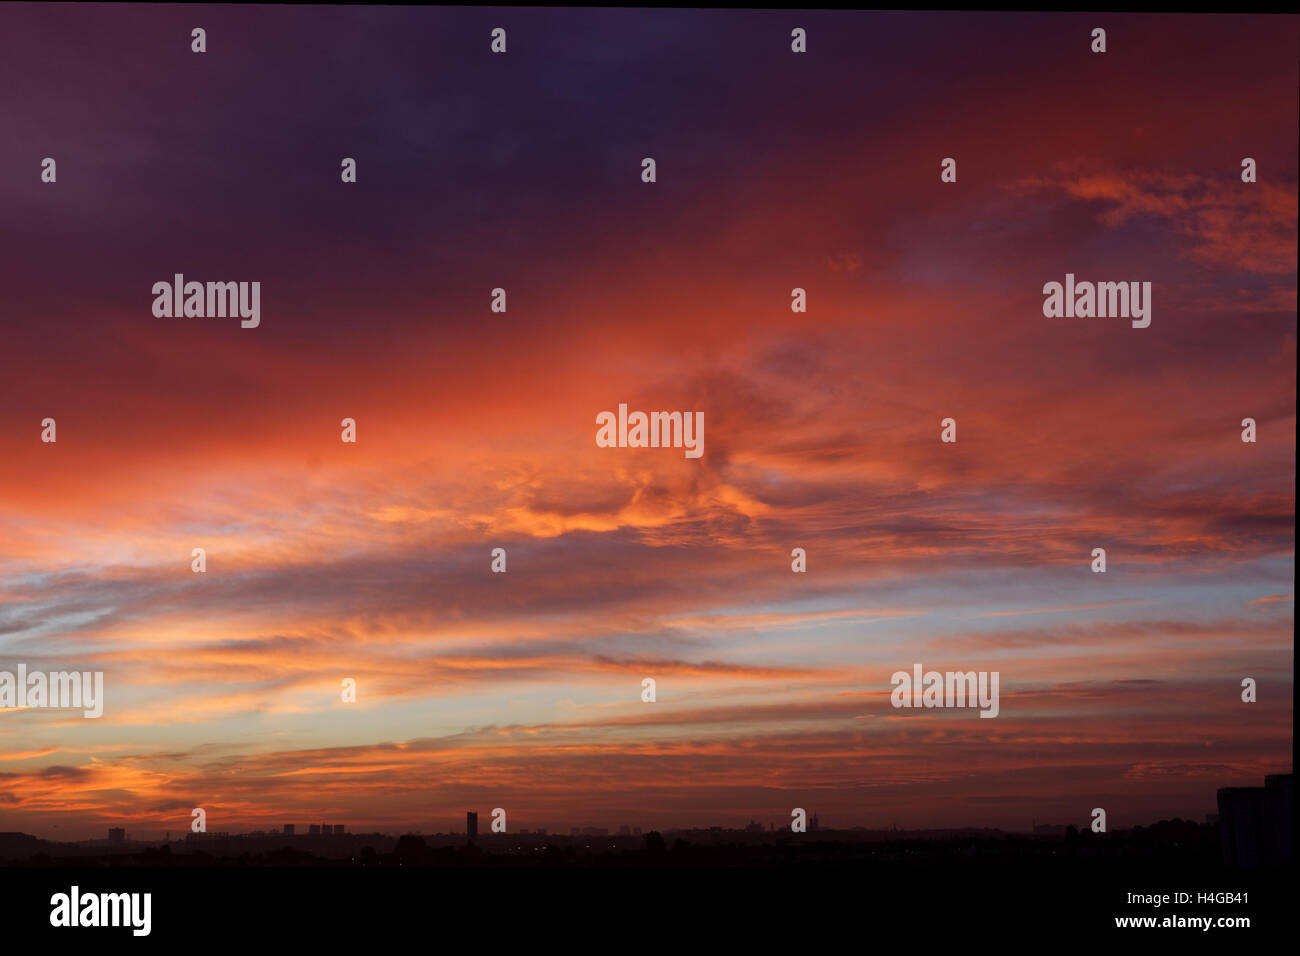 Stunning red shepherds warning sky over Glasgow as the sun rises - Stock Image